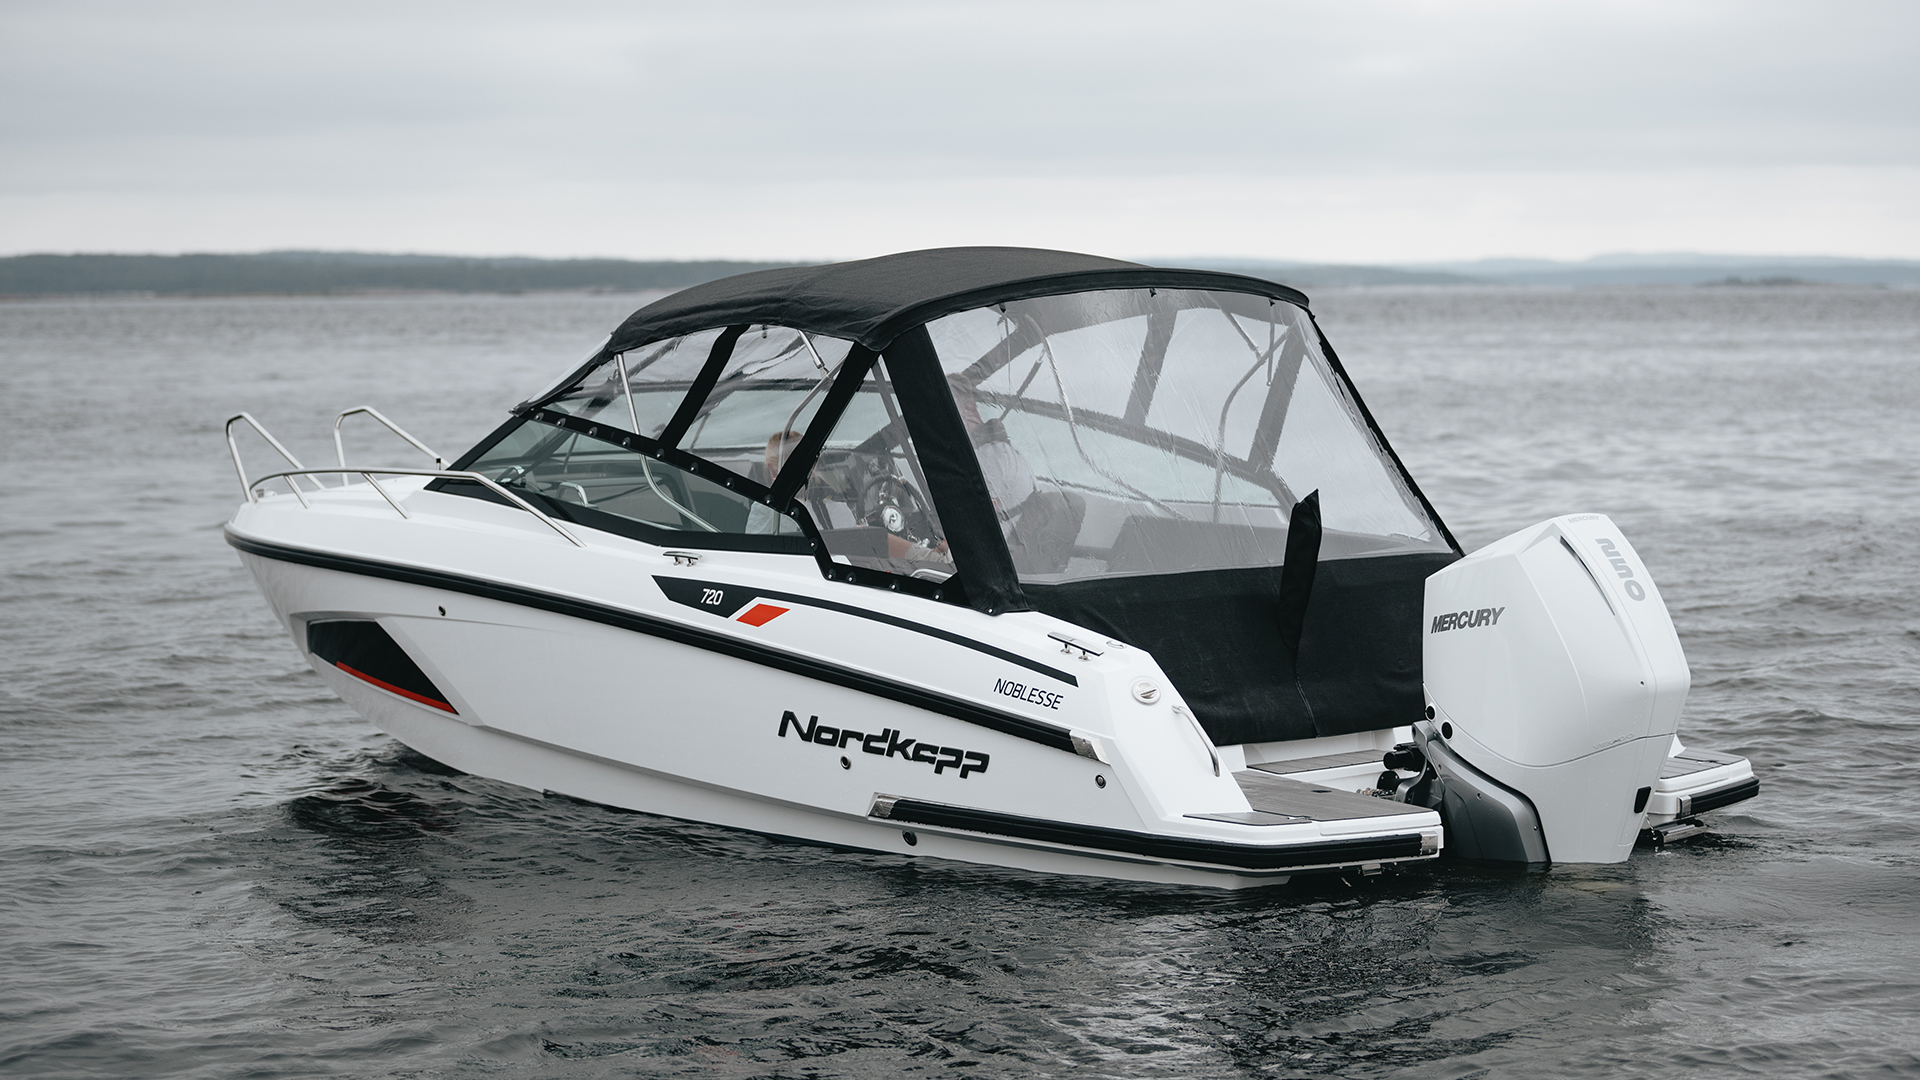 Noblesse 720 with canopy